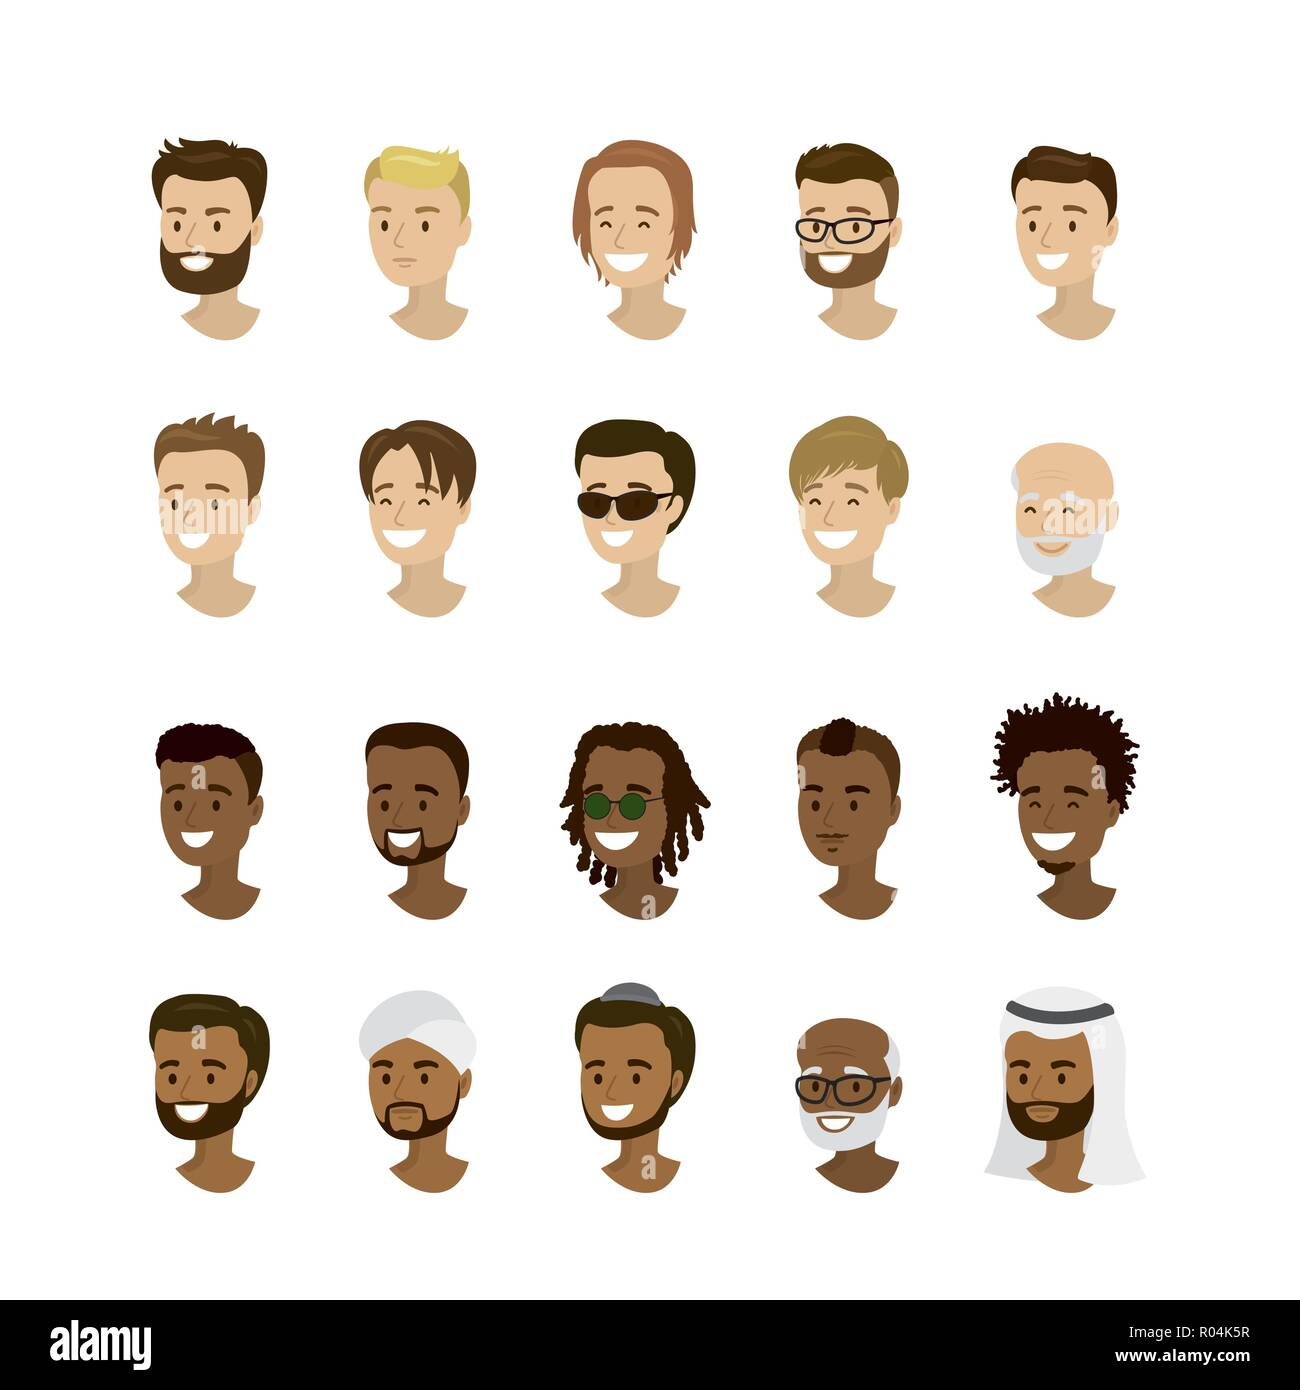 Set male faces,different nation and races, cartoon man avatars,isolated on white background,vector illustration - Stock Image